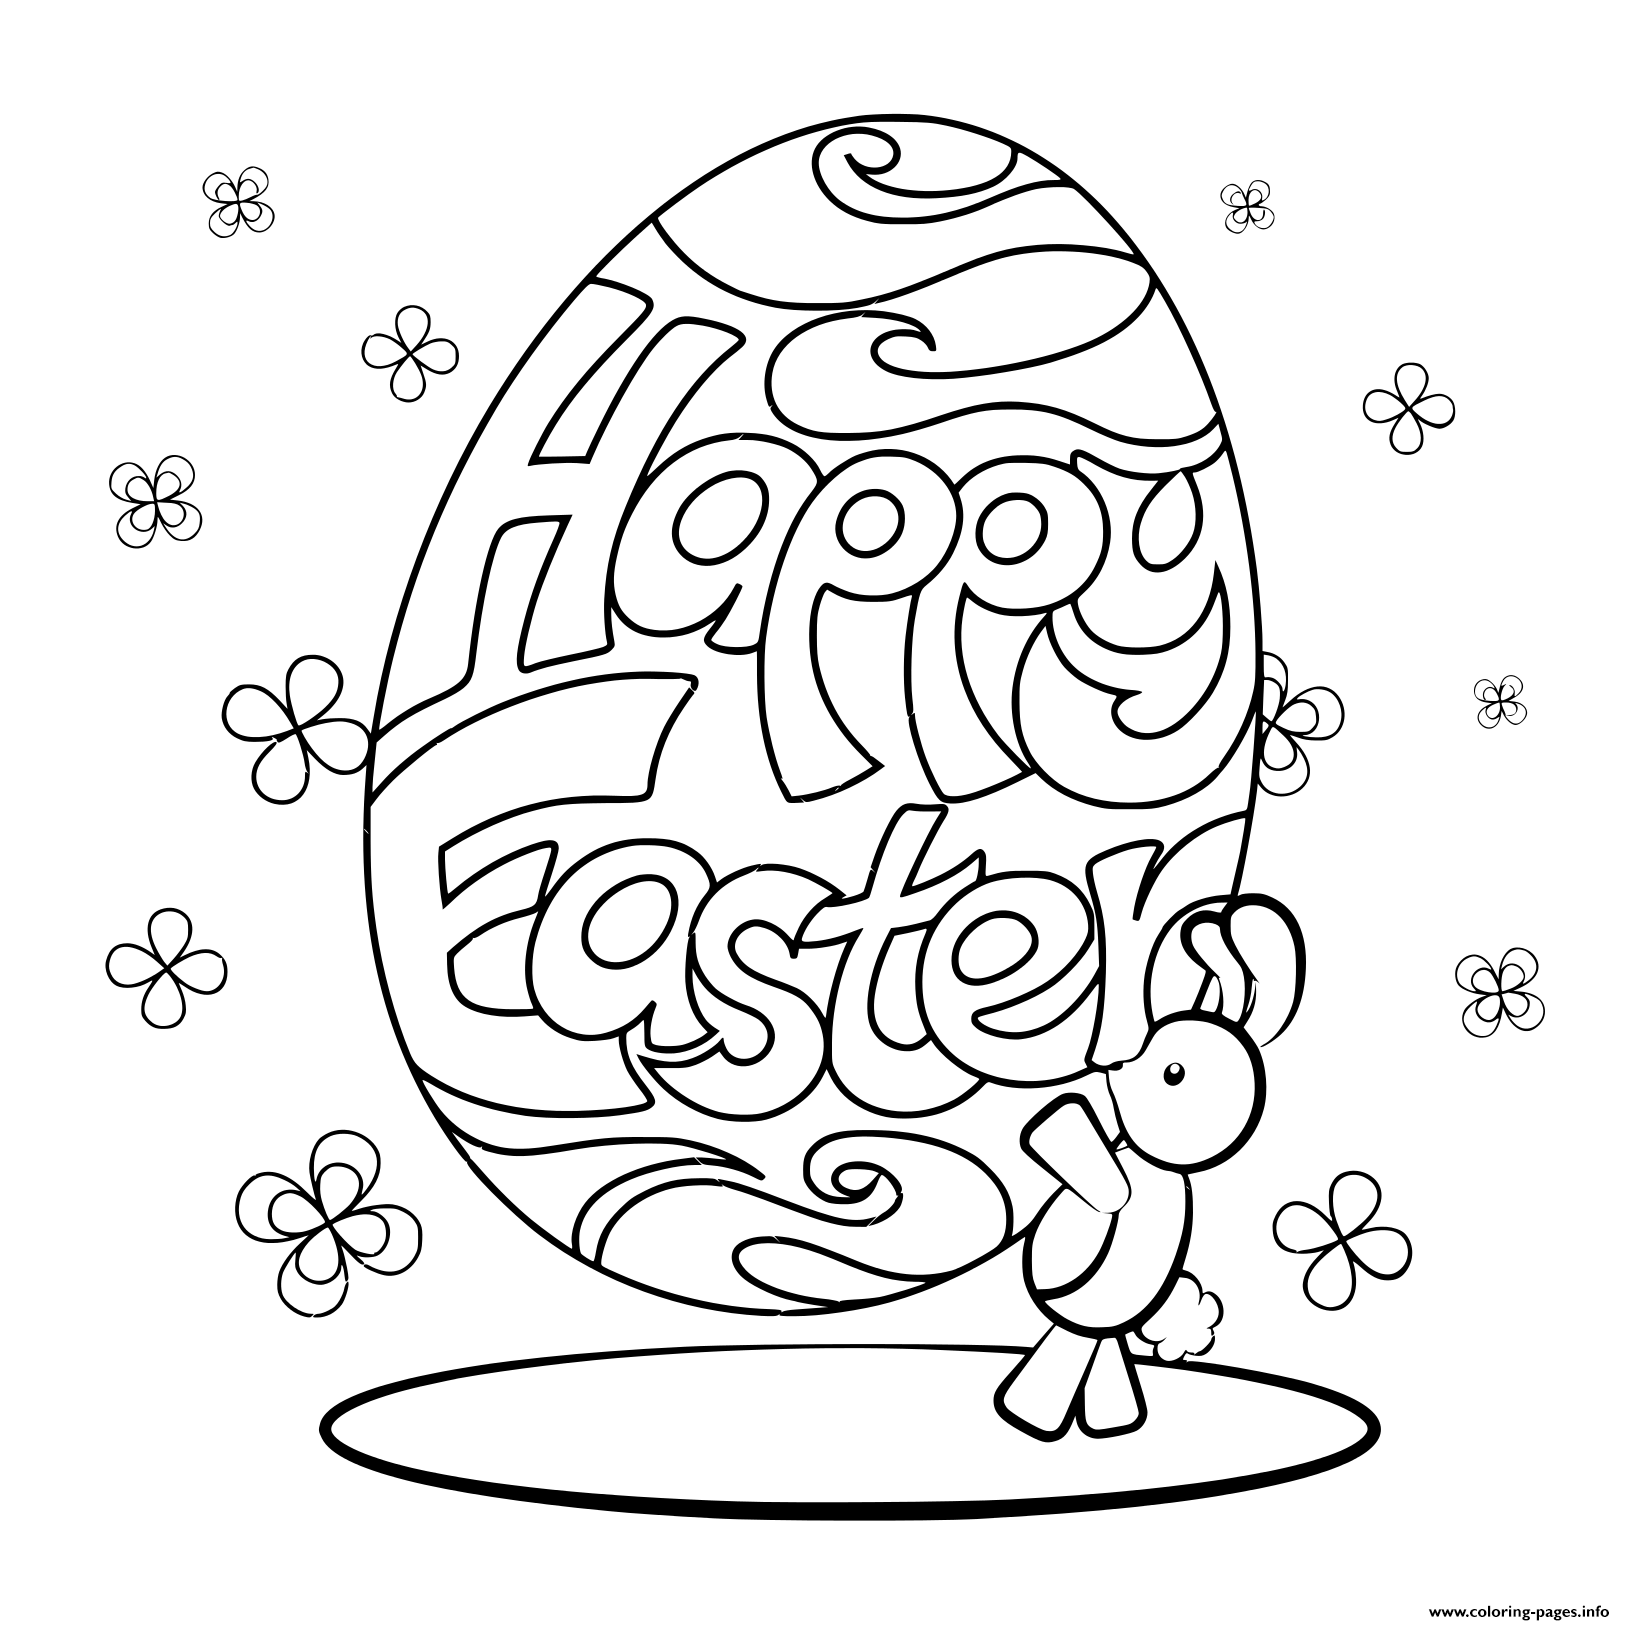 Print happy easter rabbit coloring pages | Easter egg ...